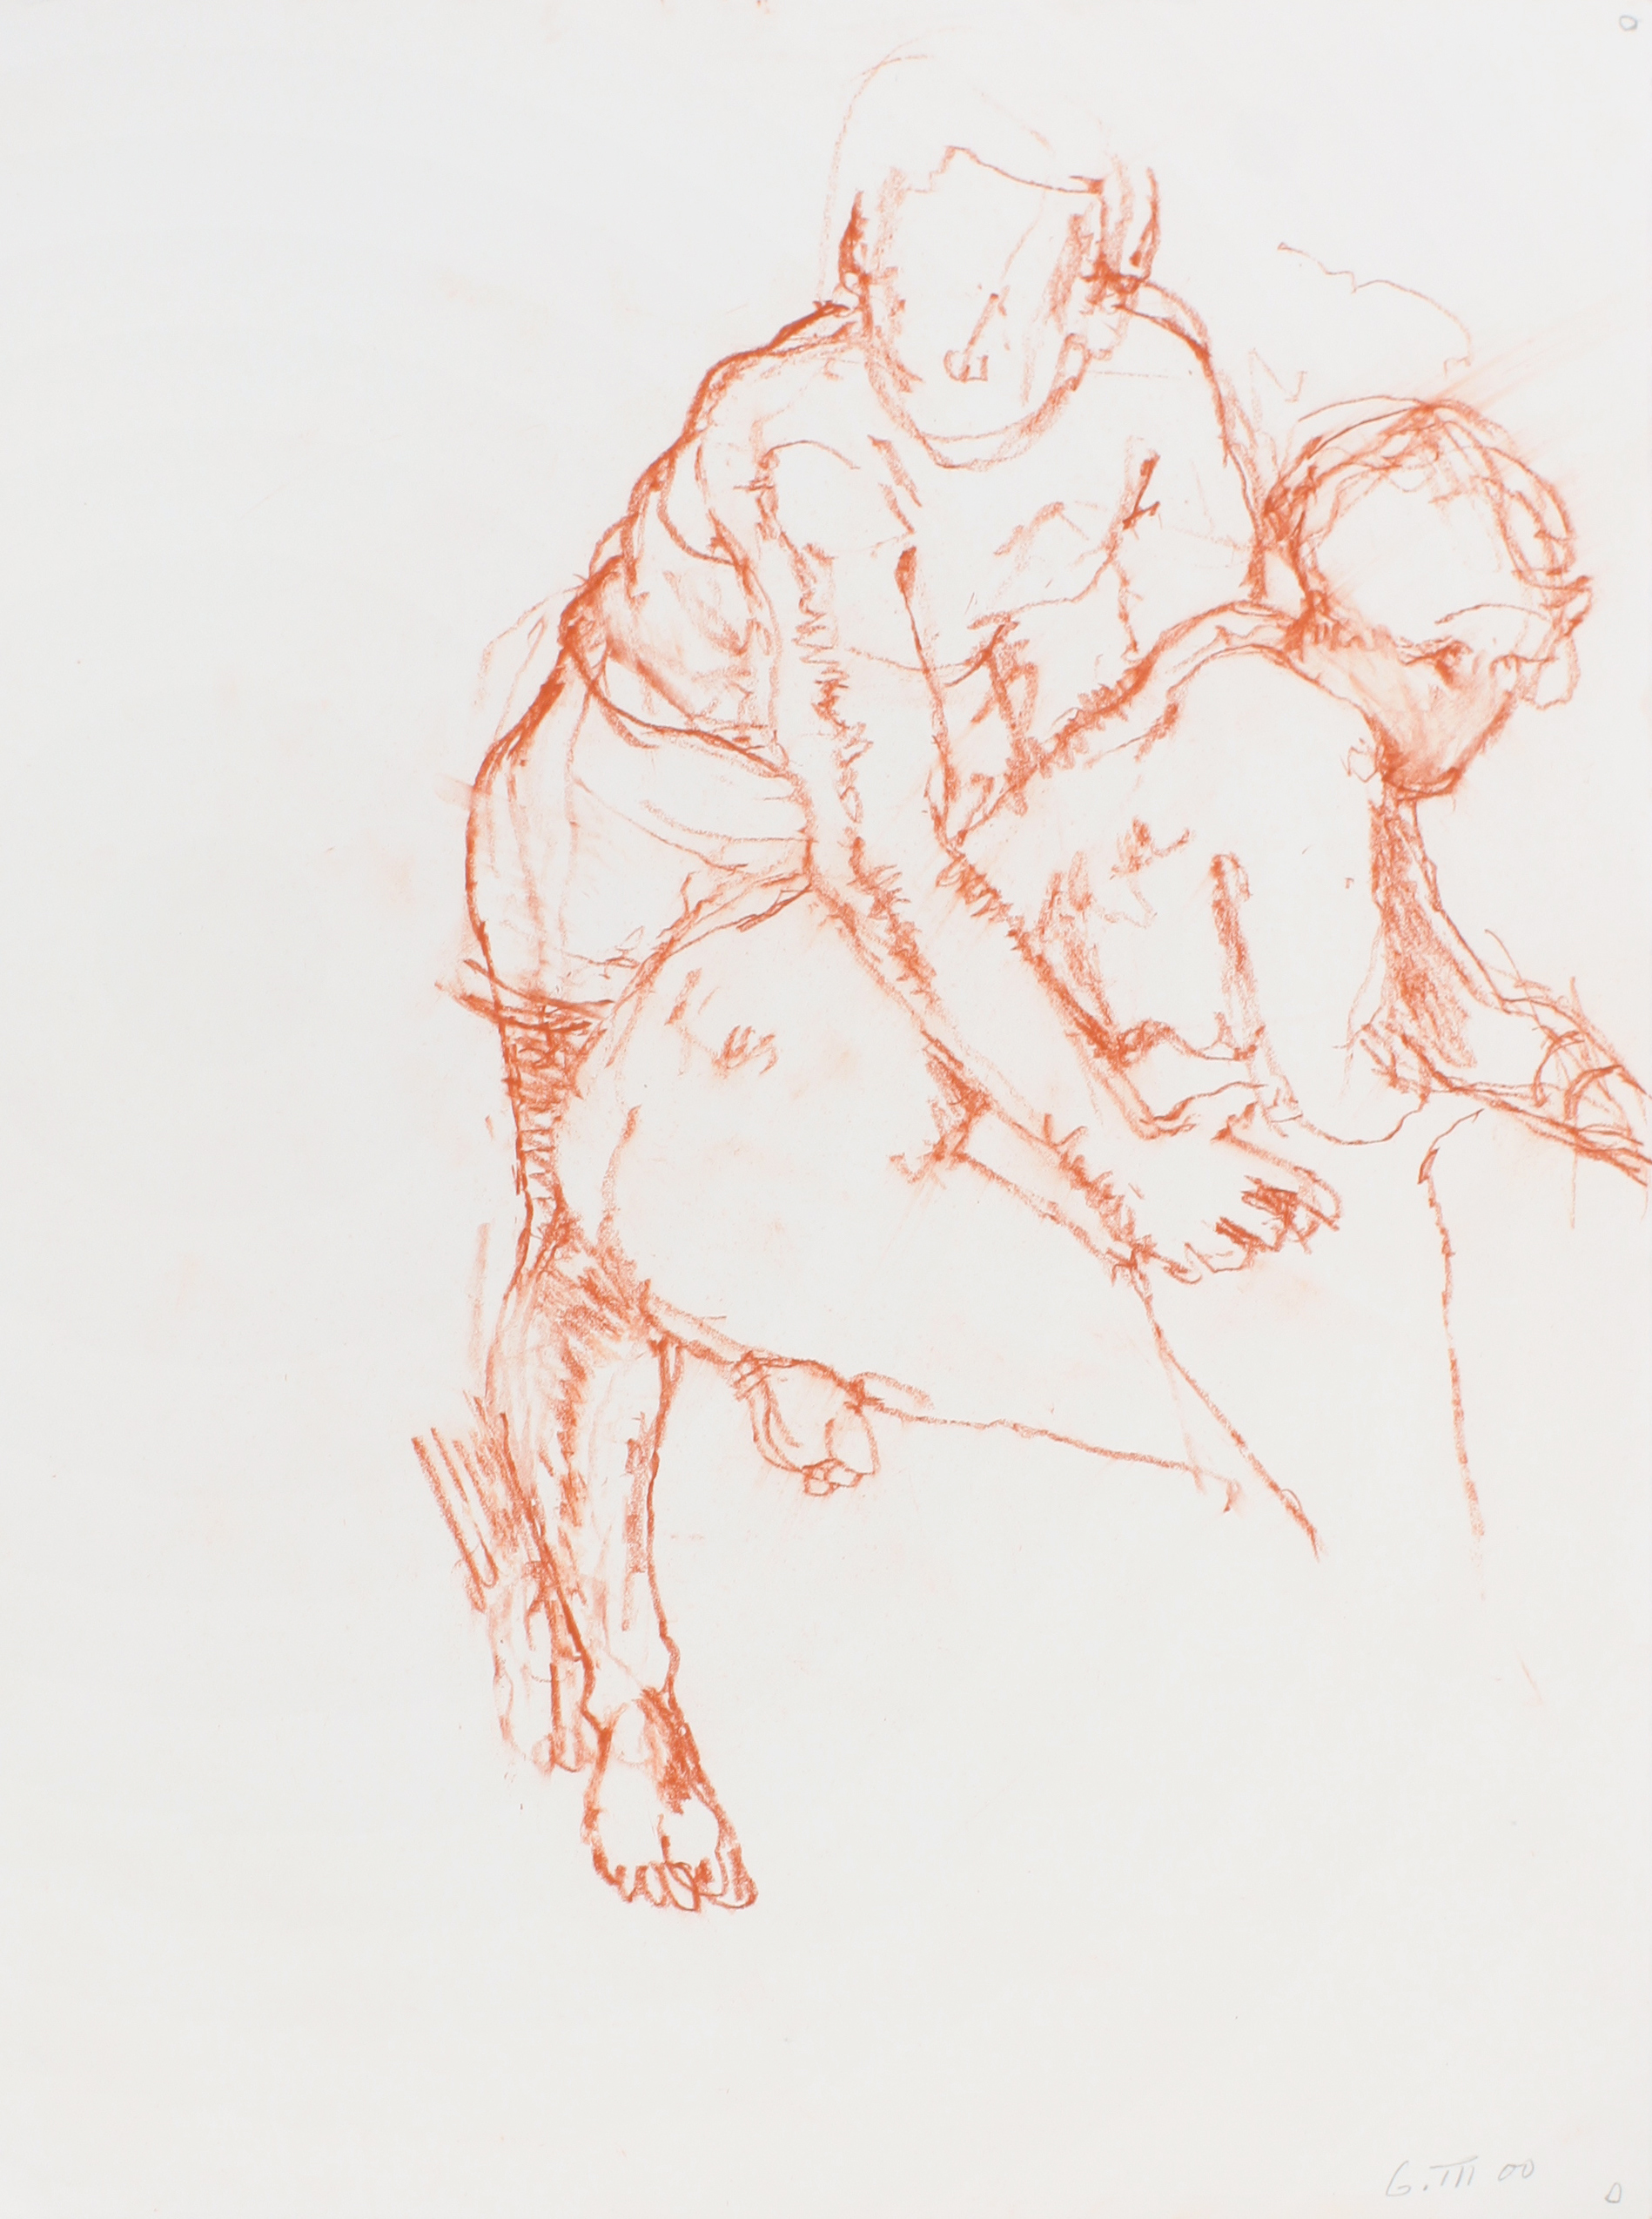 2000_Two_Nudes_Clasping_each_Other_red_conté_on_paper_15x11in_WPF578.jpg